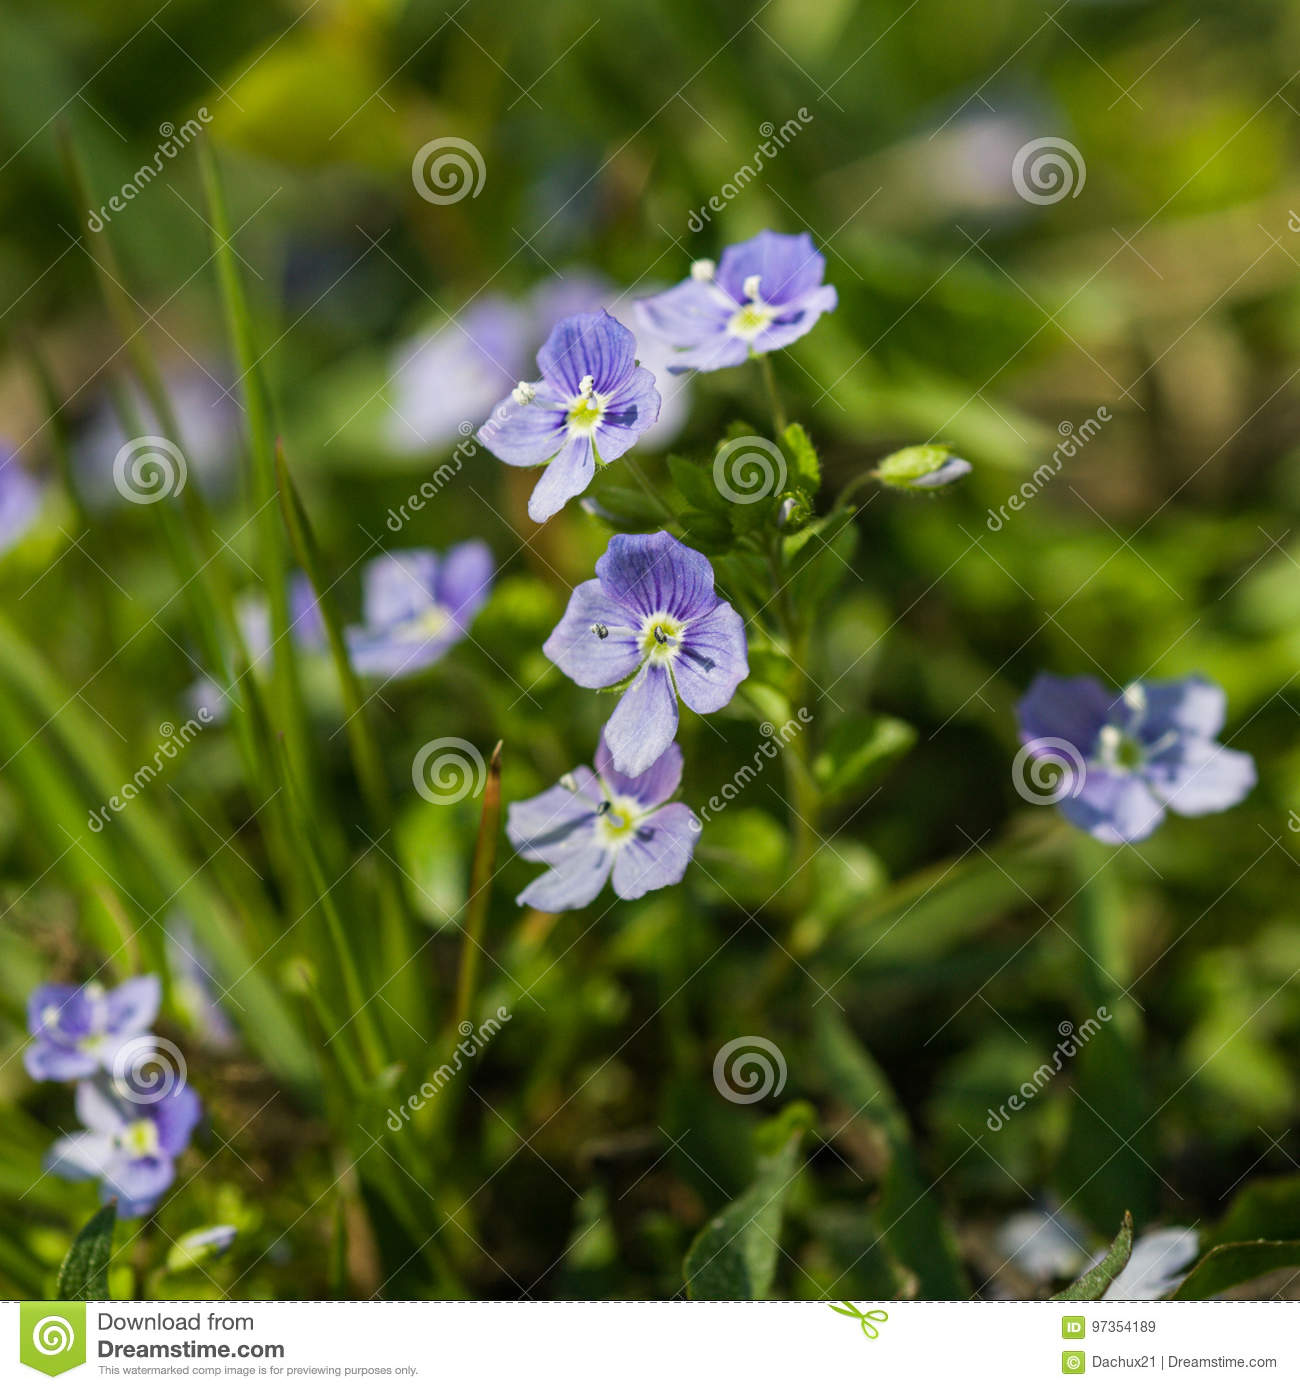 Beautiful Small Blue Flowers In The Grass Stock Image Image Of